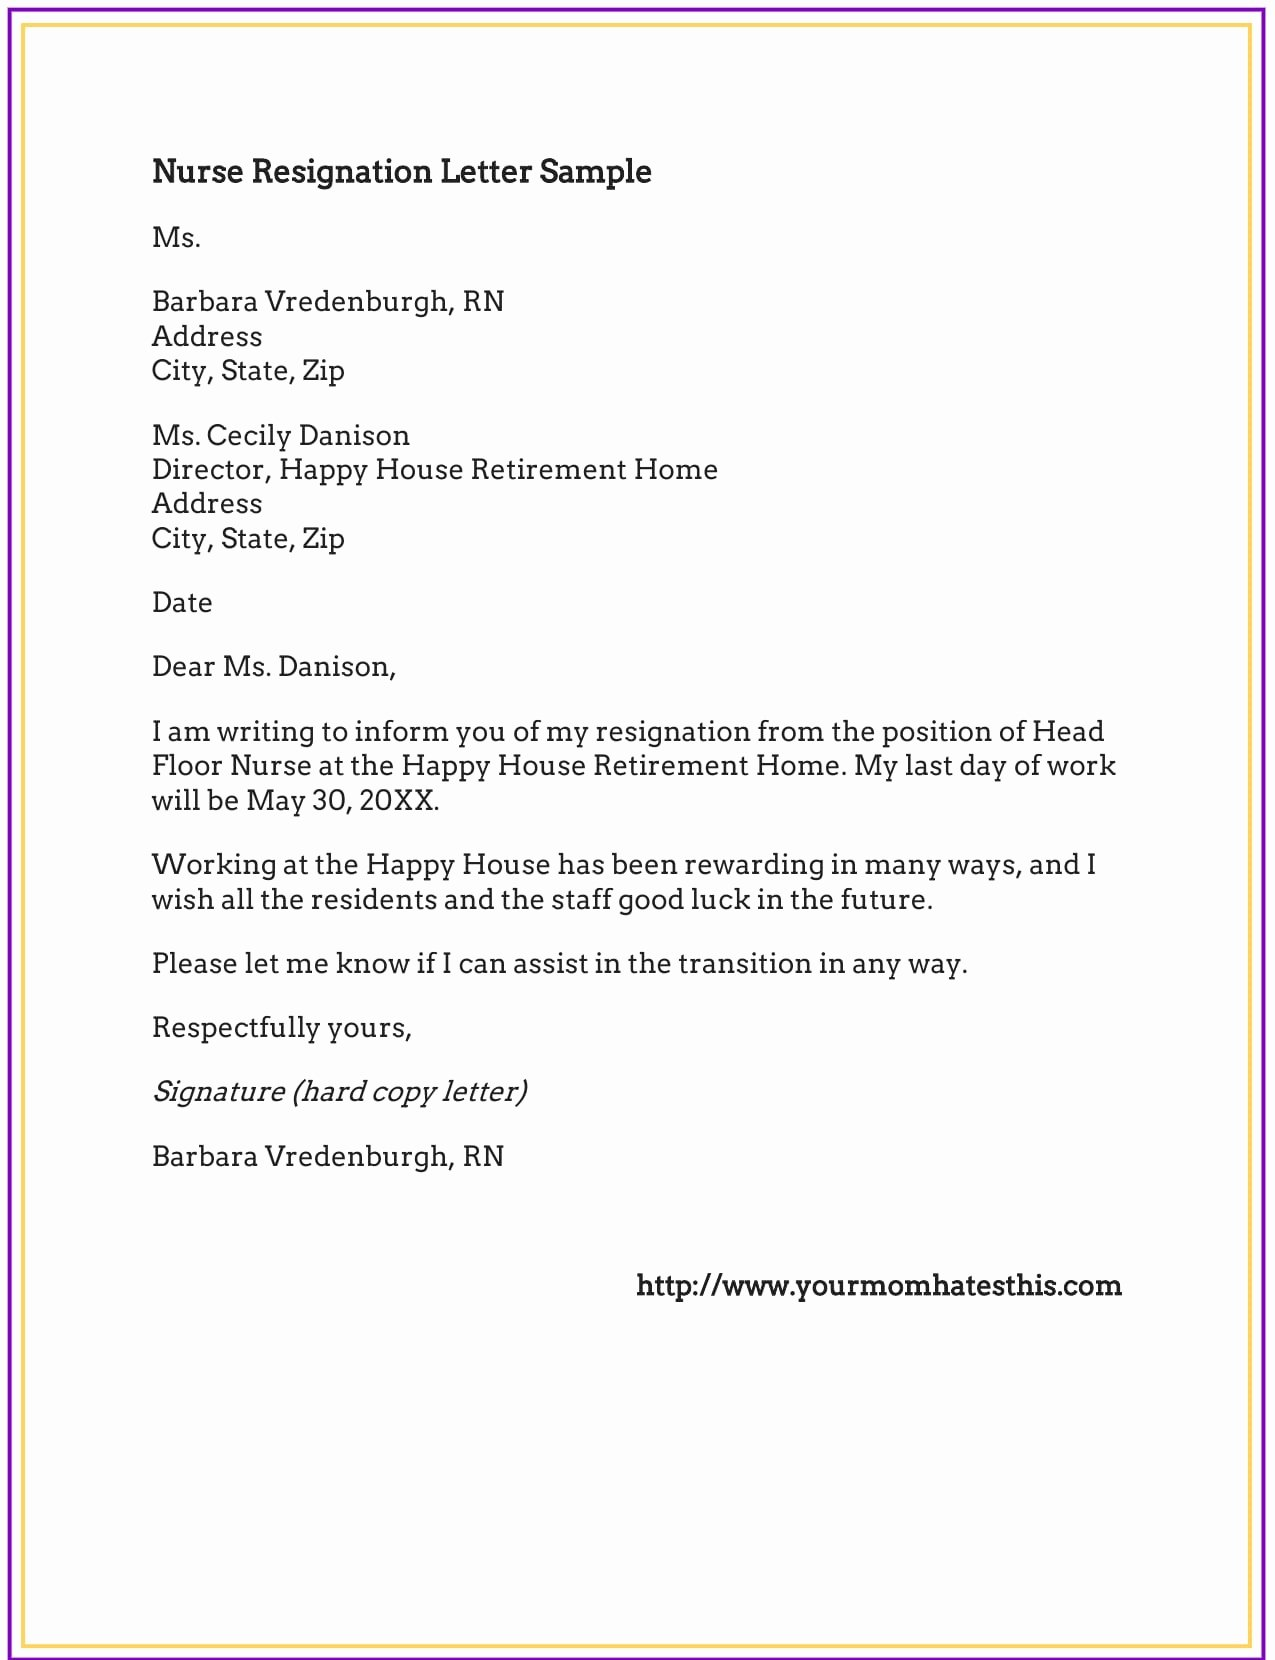 Resignation Letter Template Free Inspirational Dos and Don'ts for A Resignation Letter